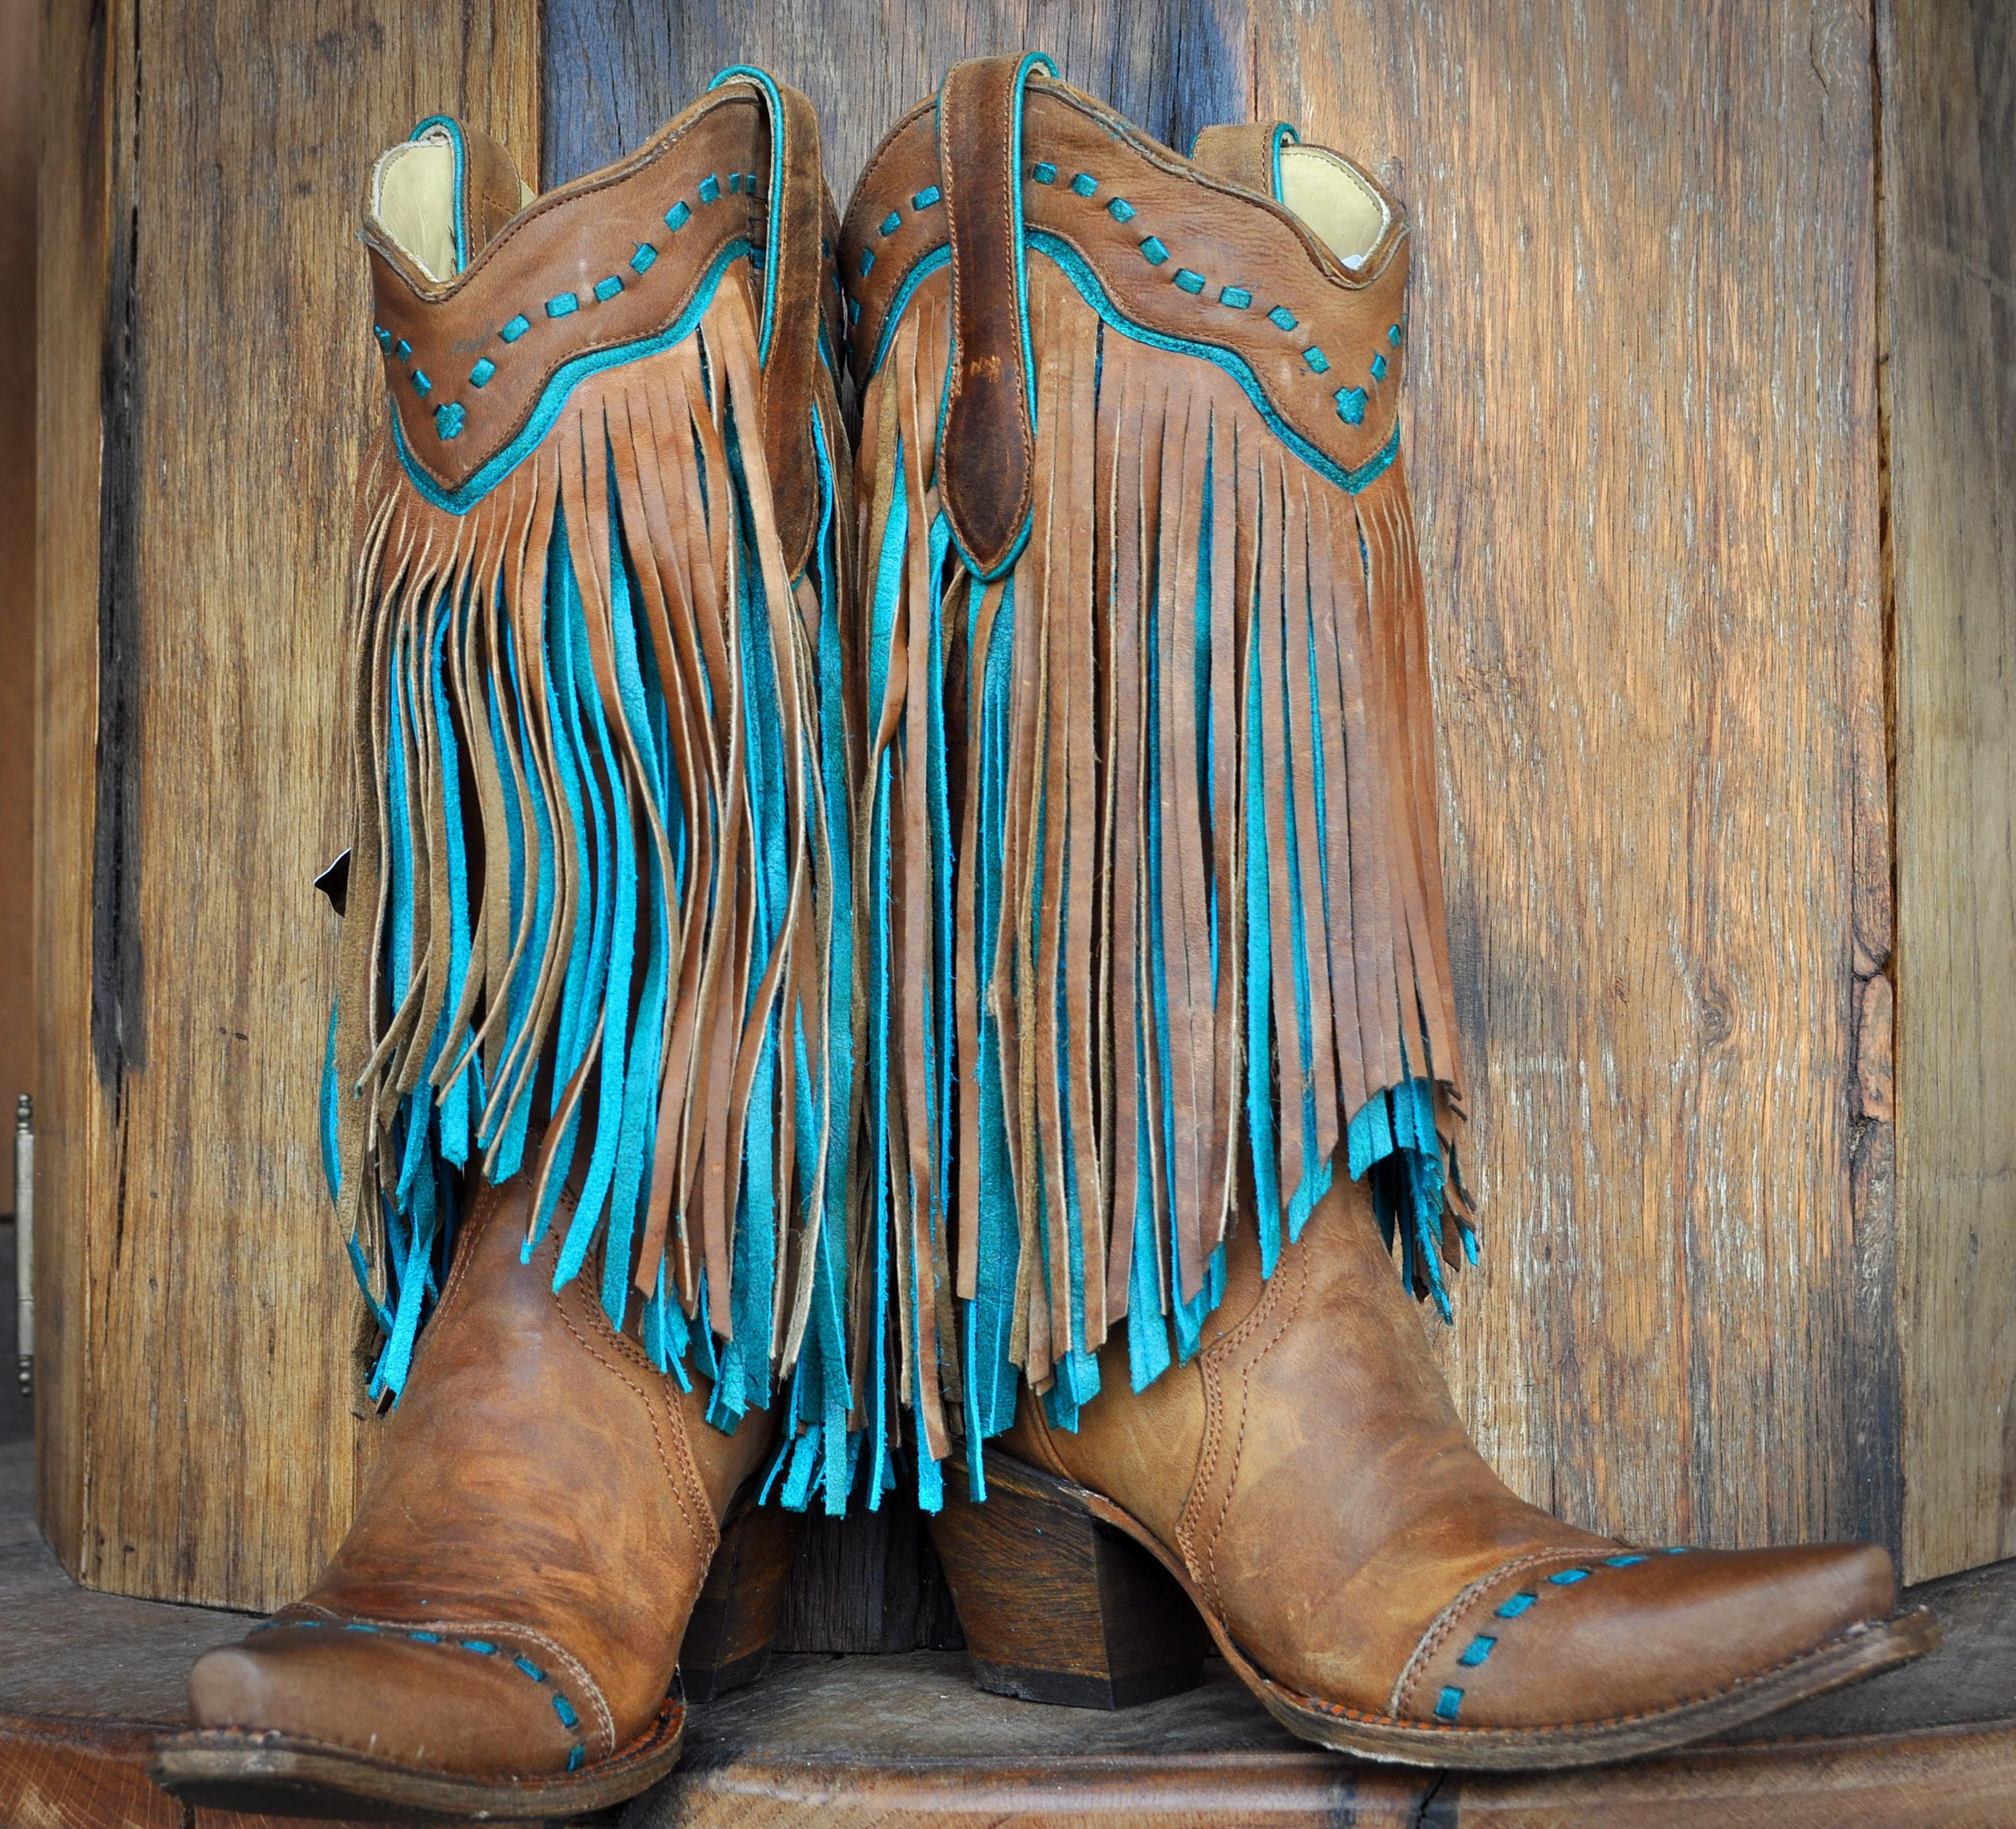 2b8ea1f9a1 Cowgirl Stiefel. Cowgirlart. Ladies Corral Tan and Turquoise Fringe Boots -  Ranch Outlet Taschen, Kleidung, Boho Stiefel